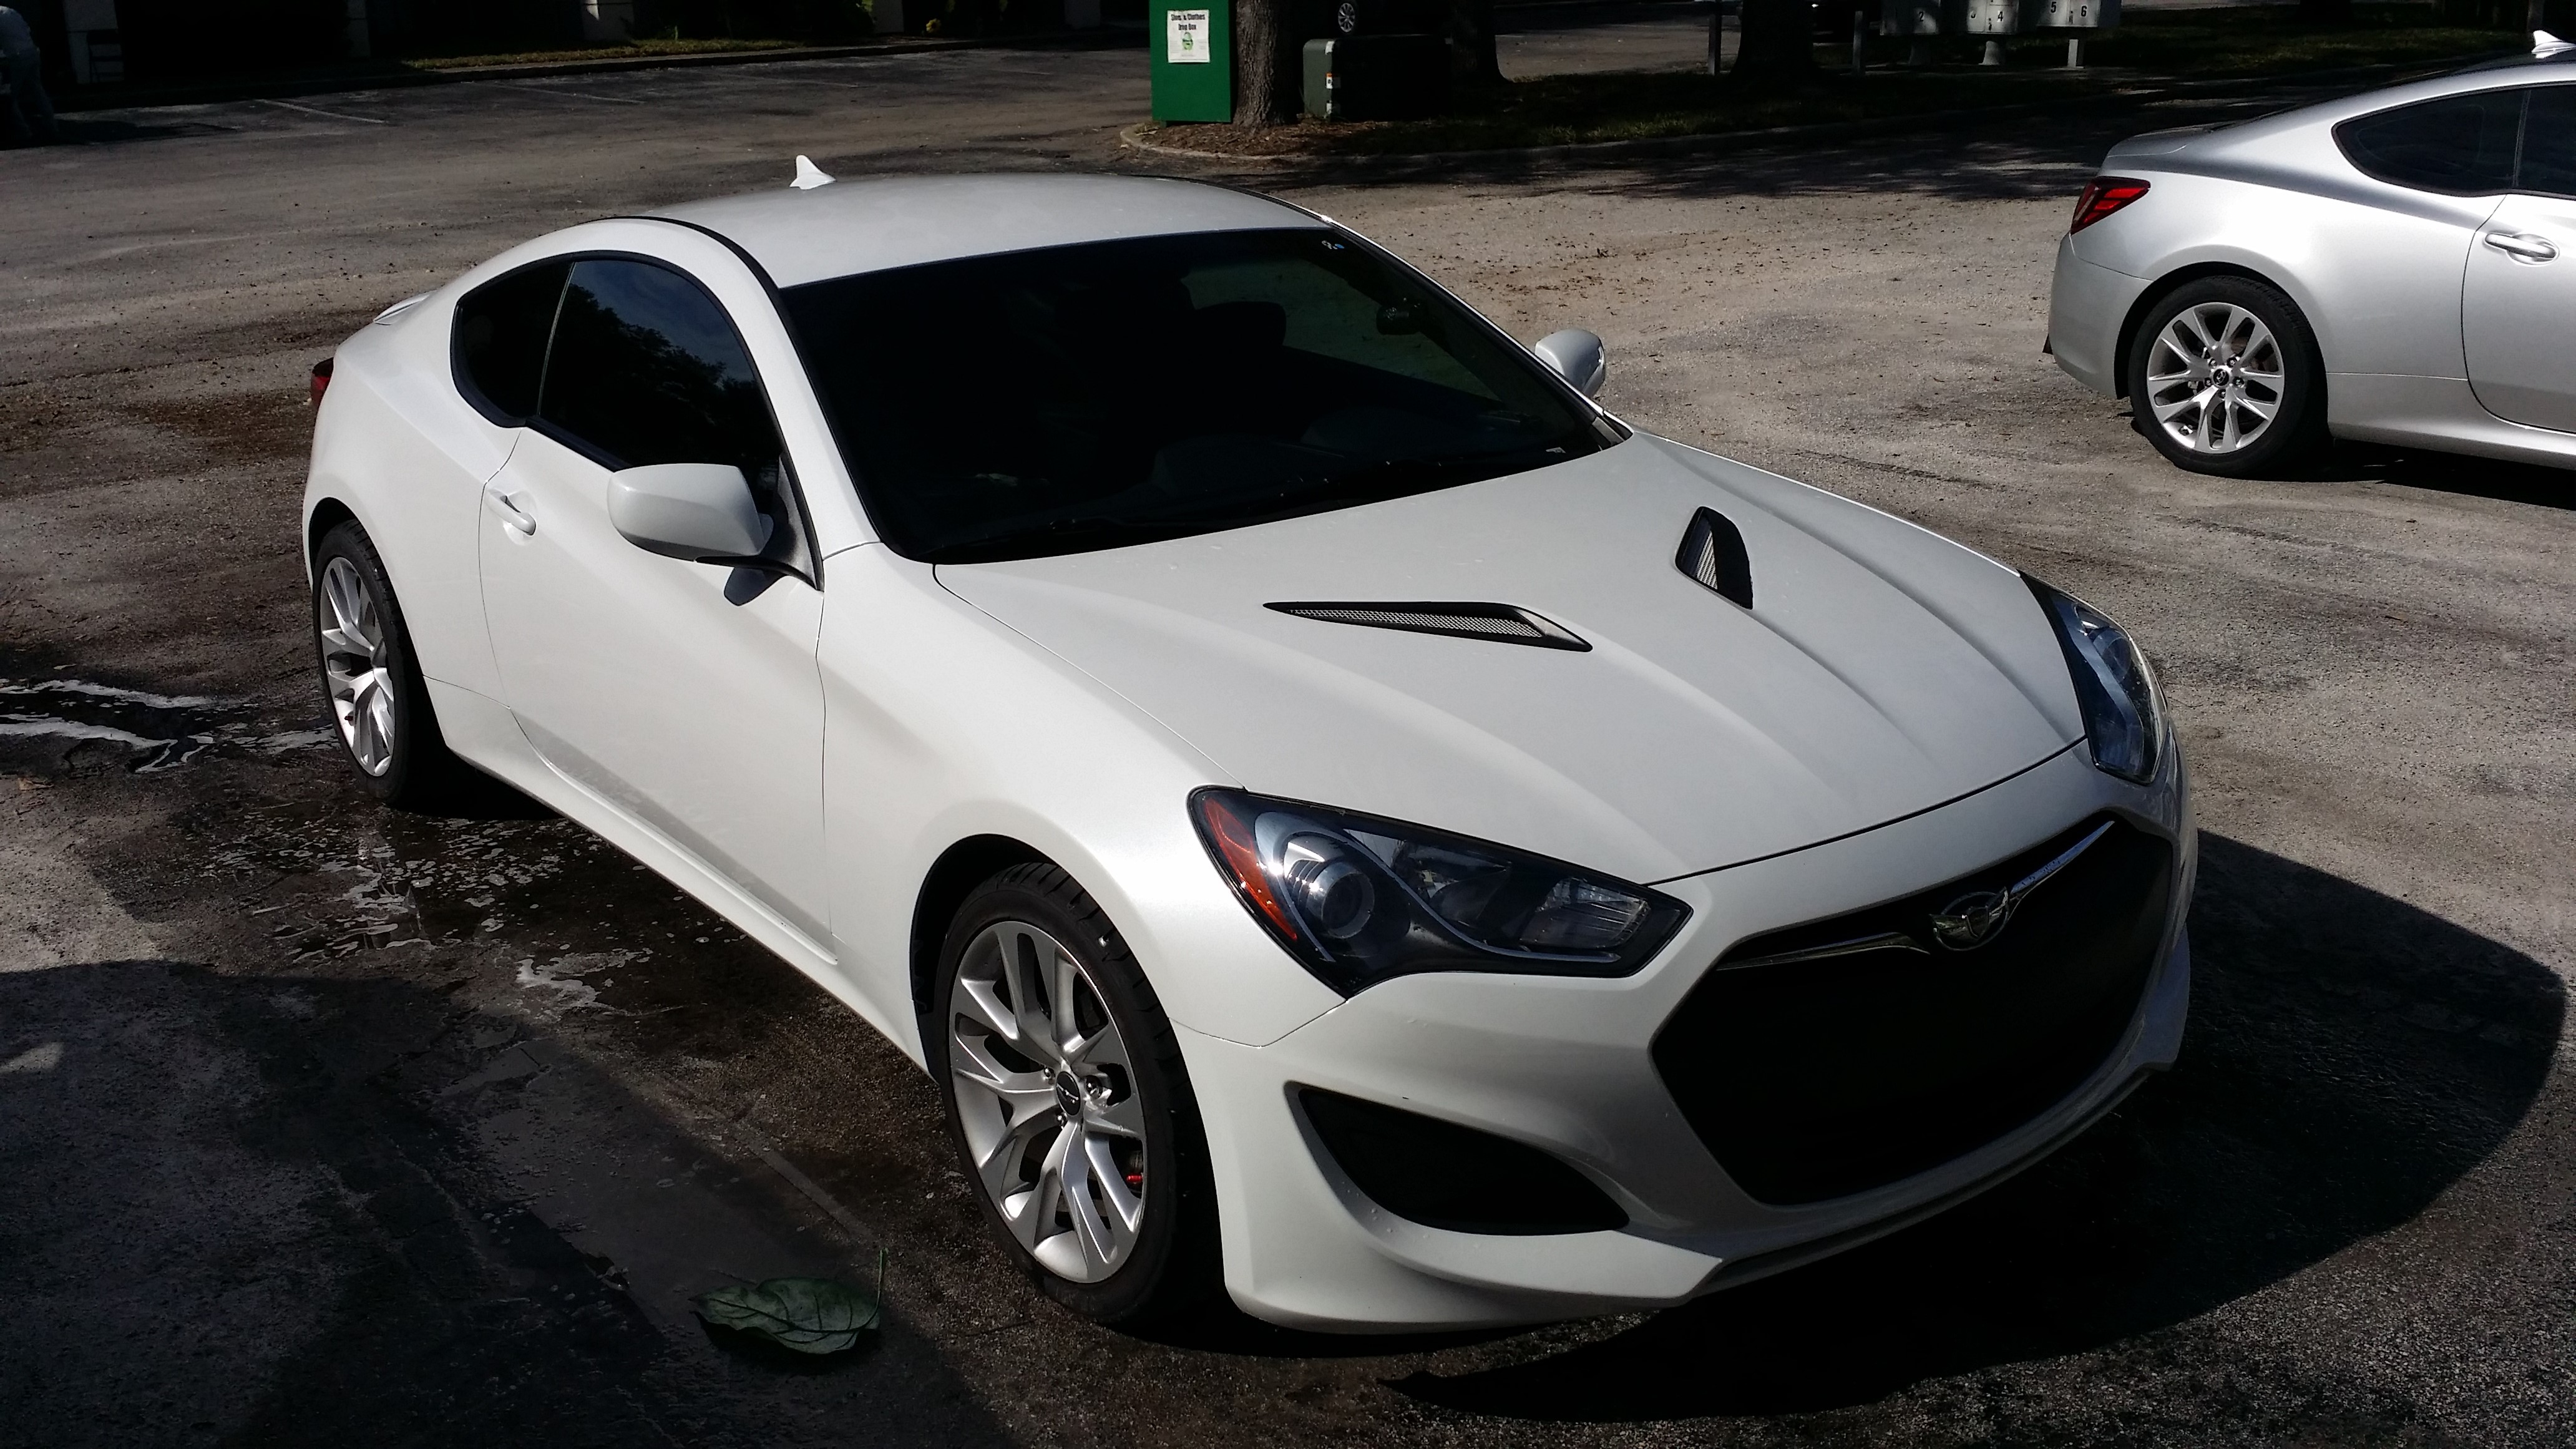 2013 genesis. Functional Hood Vents. Great For Keeping IAT Down. 2013 Genesis Coupe 2.0T A